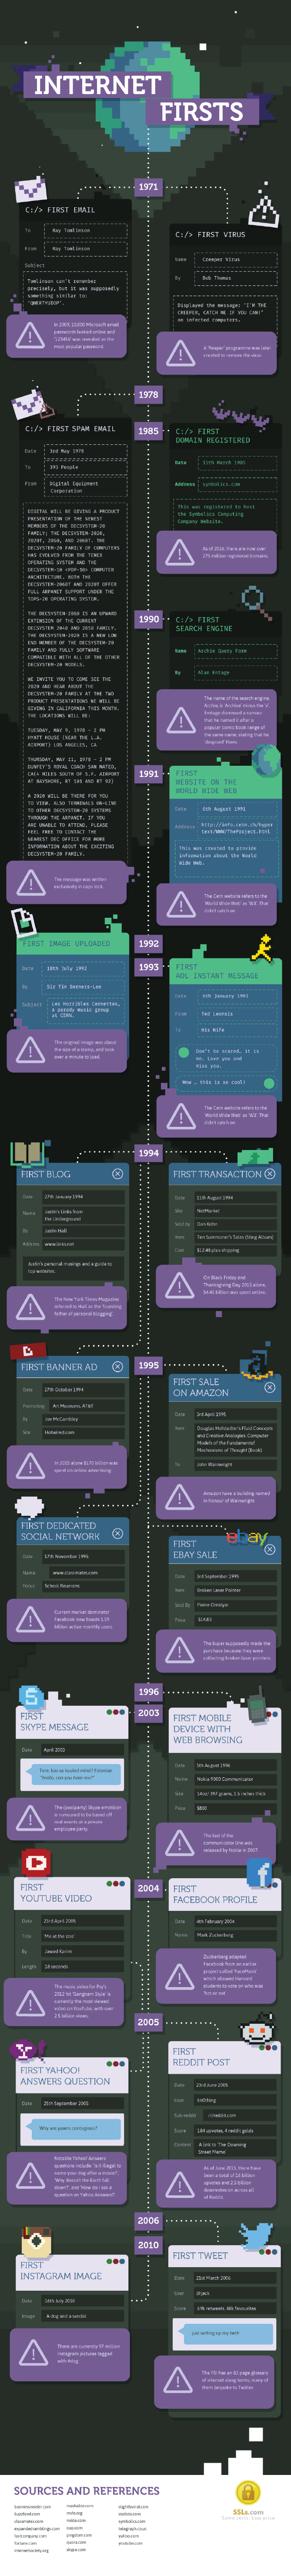 internet-firsts-infographic.png